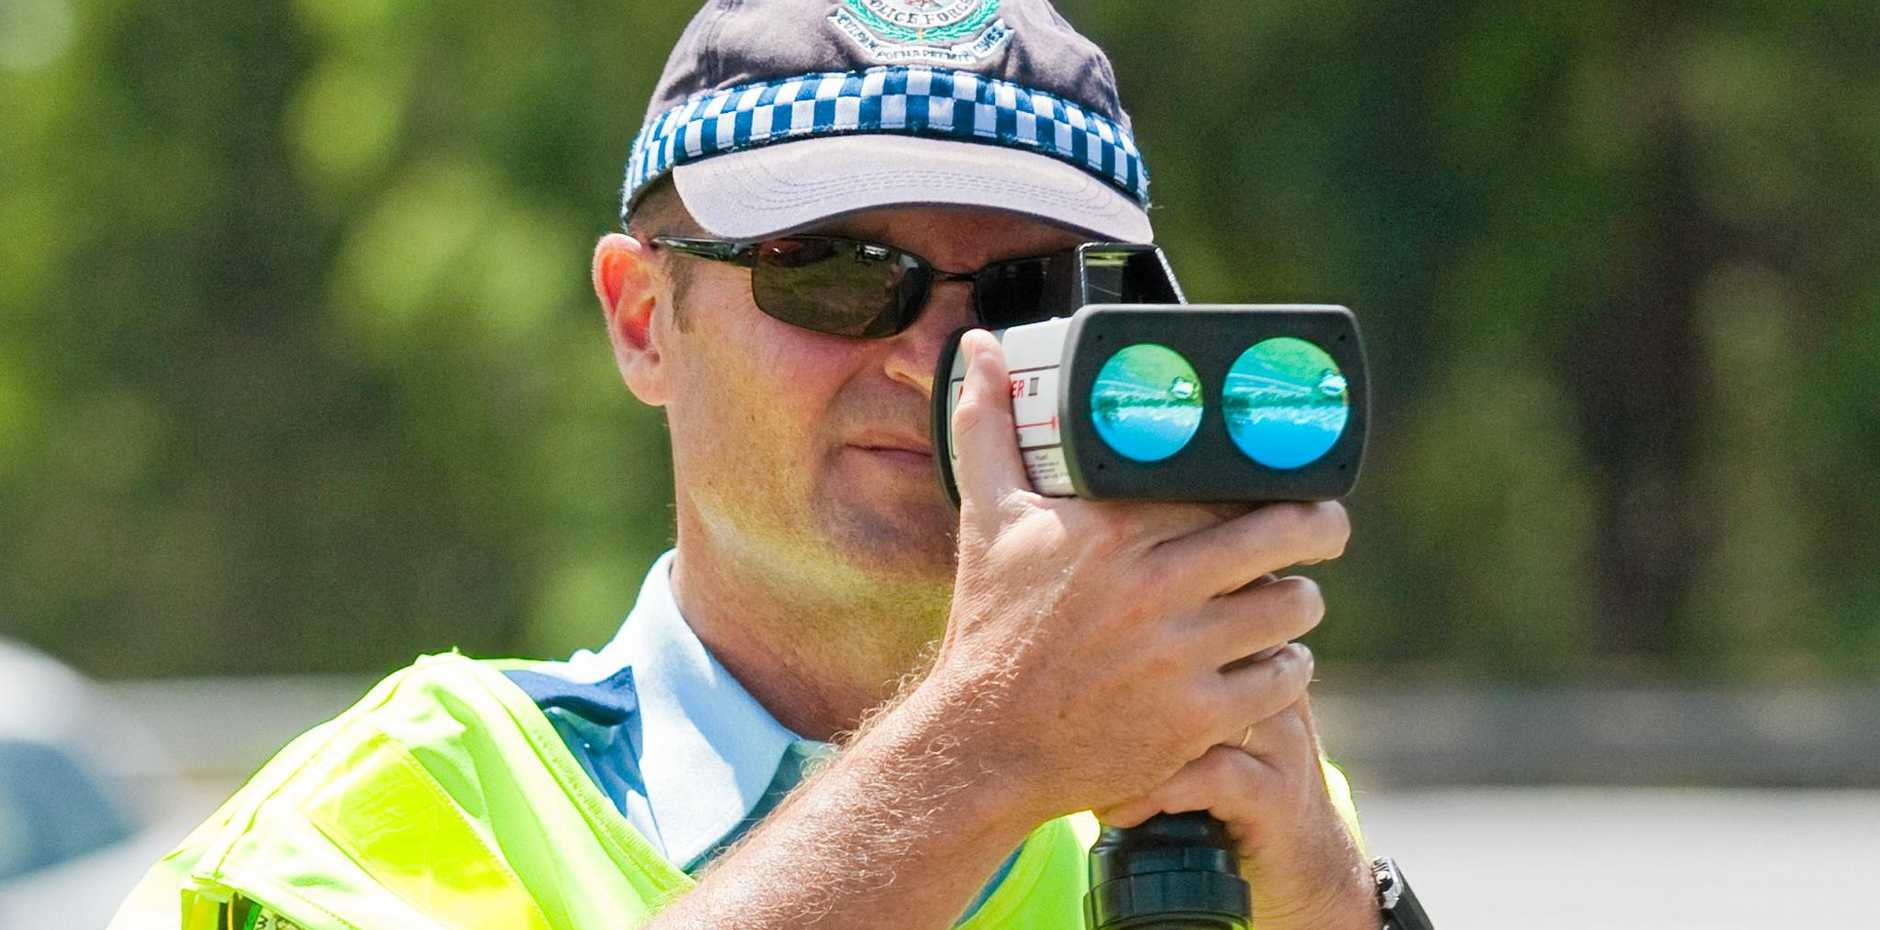 SLOW DOWN: Police in Wide Bay and Burnett busted more than 2000 drivers for speed related offences between July 1 and Sunday.